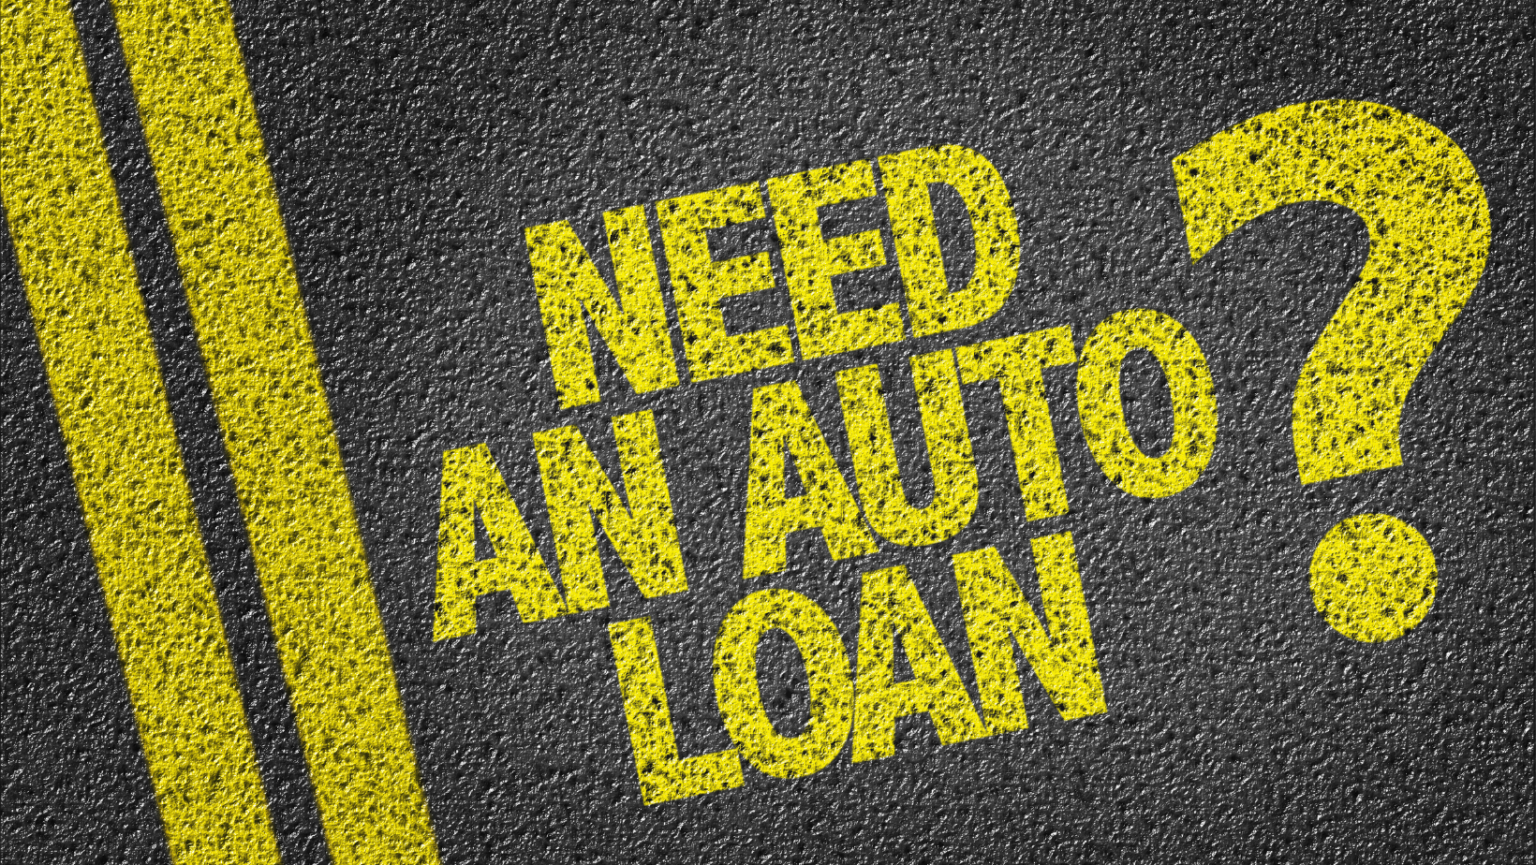 Angela Marie Kovacs: Car Loan Interest Rates by Credit Scores